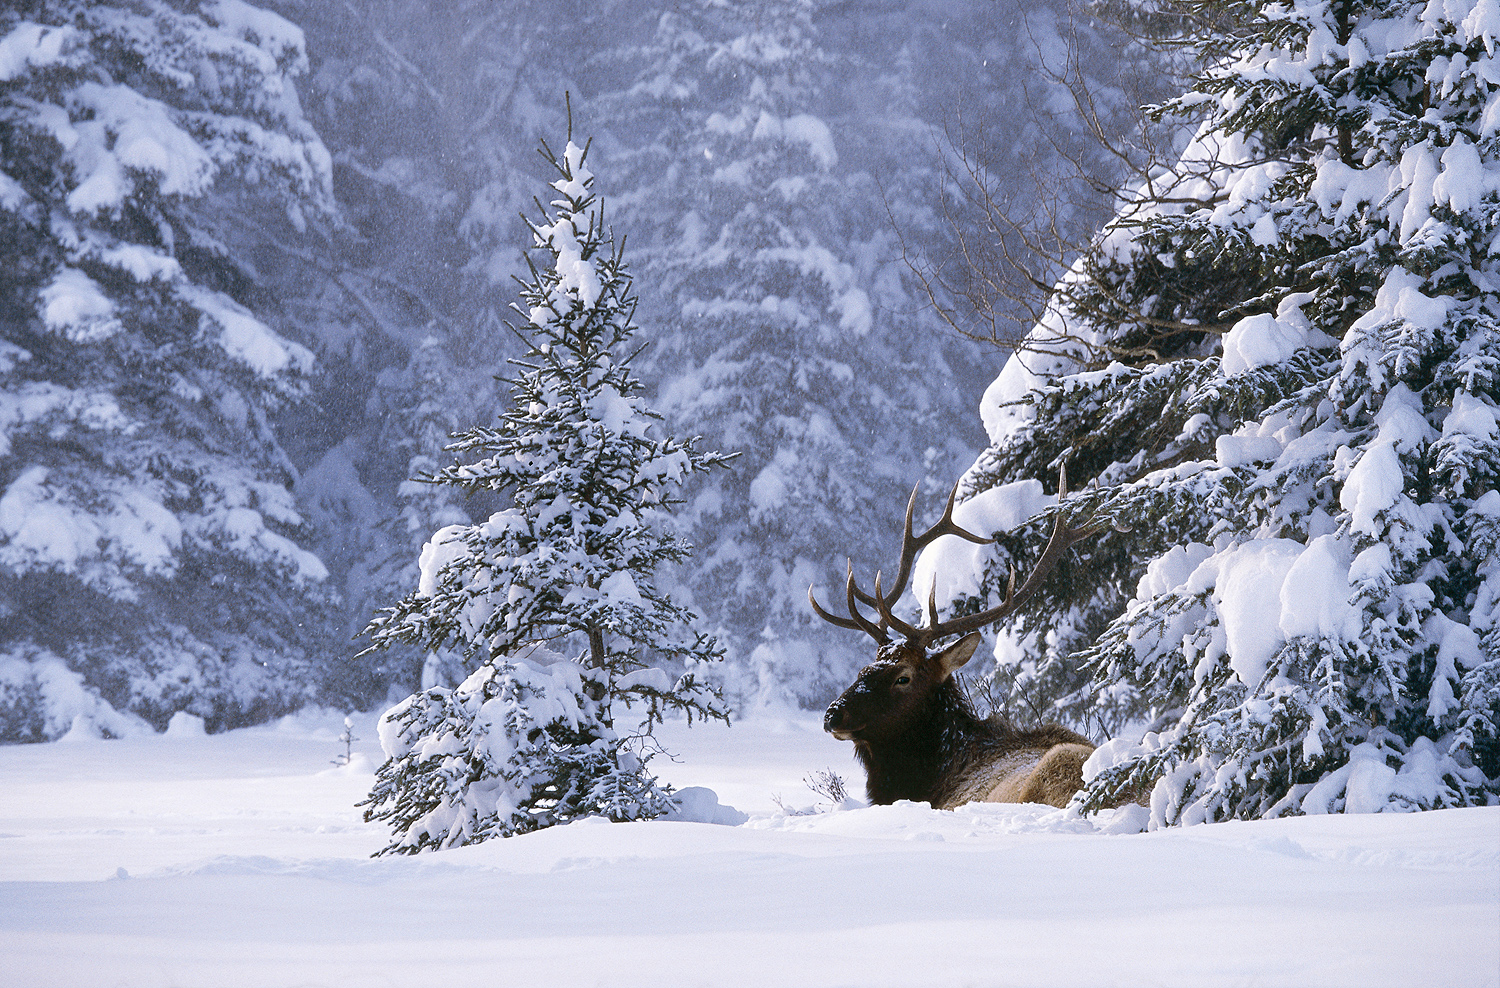 Bull elk resting in snow in Banff National Park by John E. Marriott